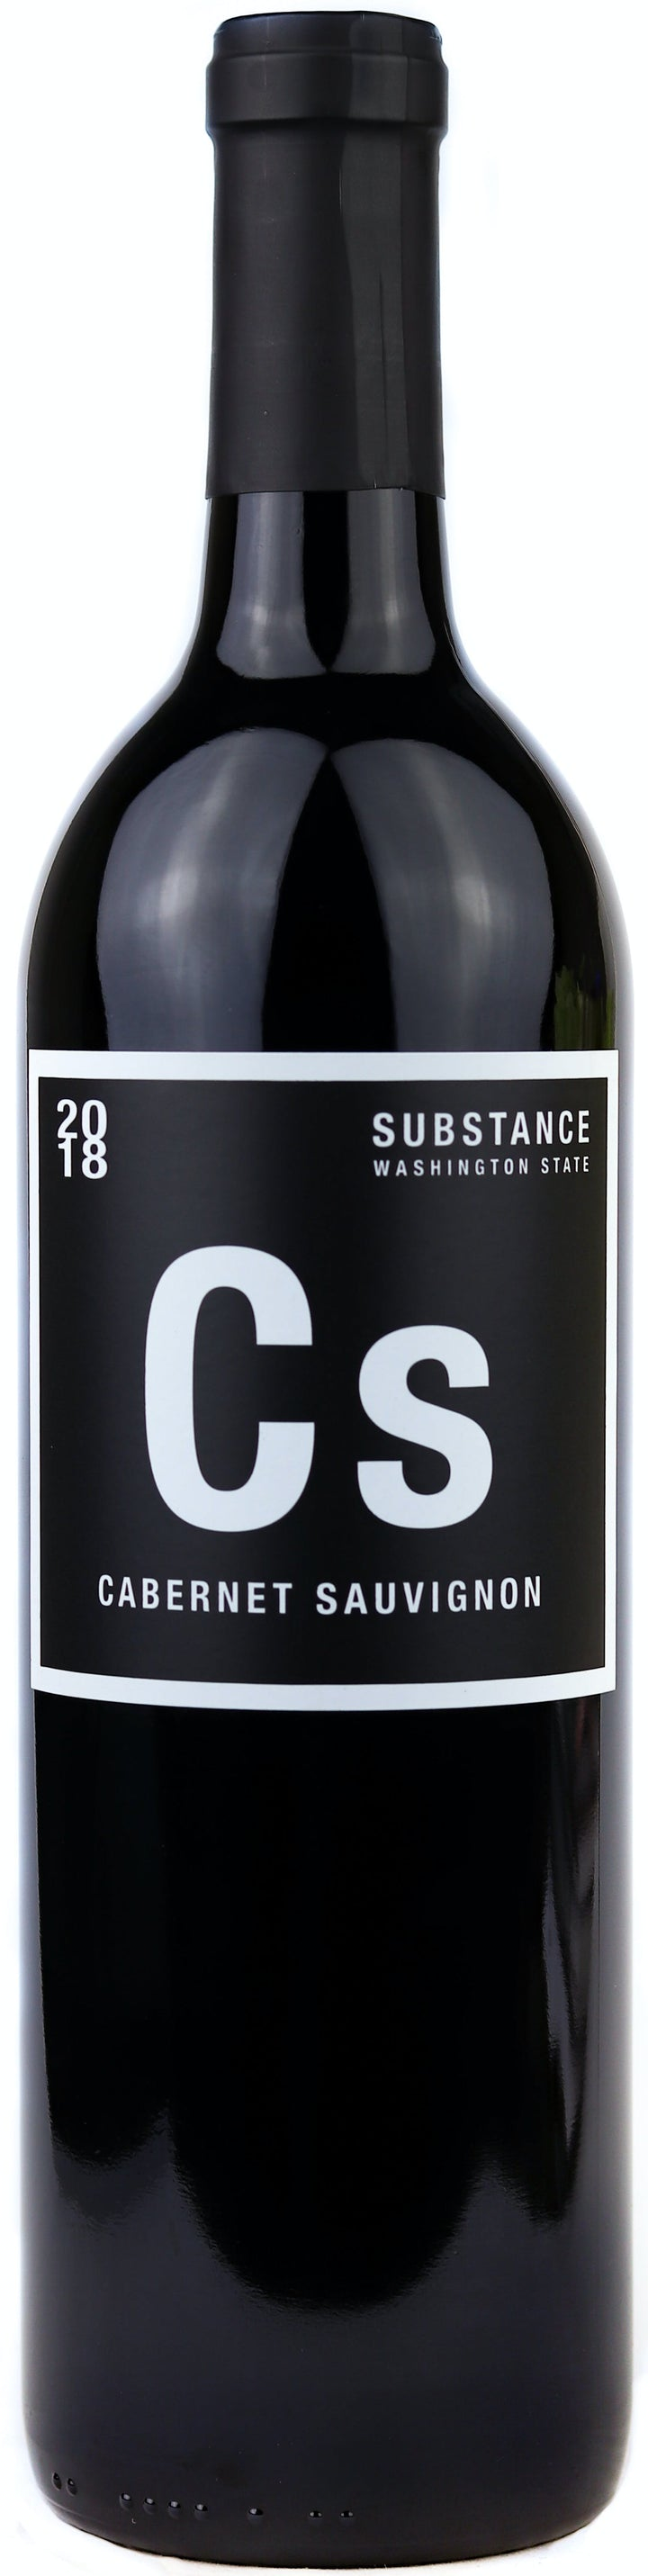 2018 Substance Cabernet Sauvignon, Columbia Valley